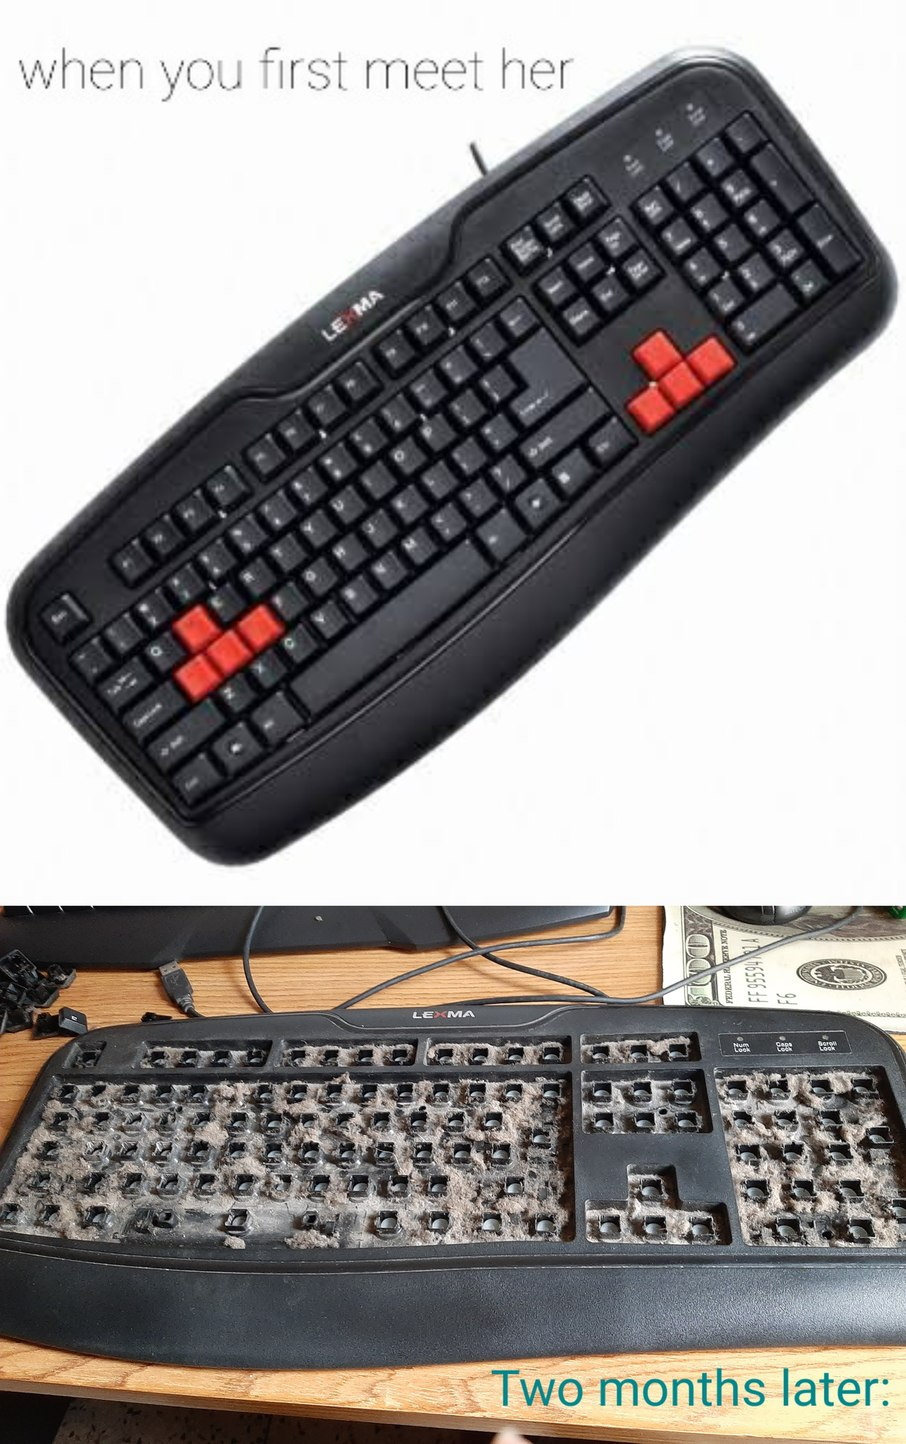 Quite literally the dirtiest keyboard I have ever had the chance to clean yet - meme